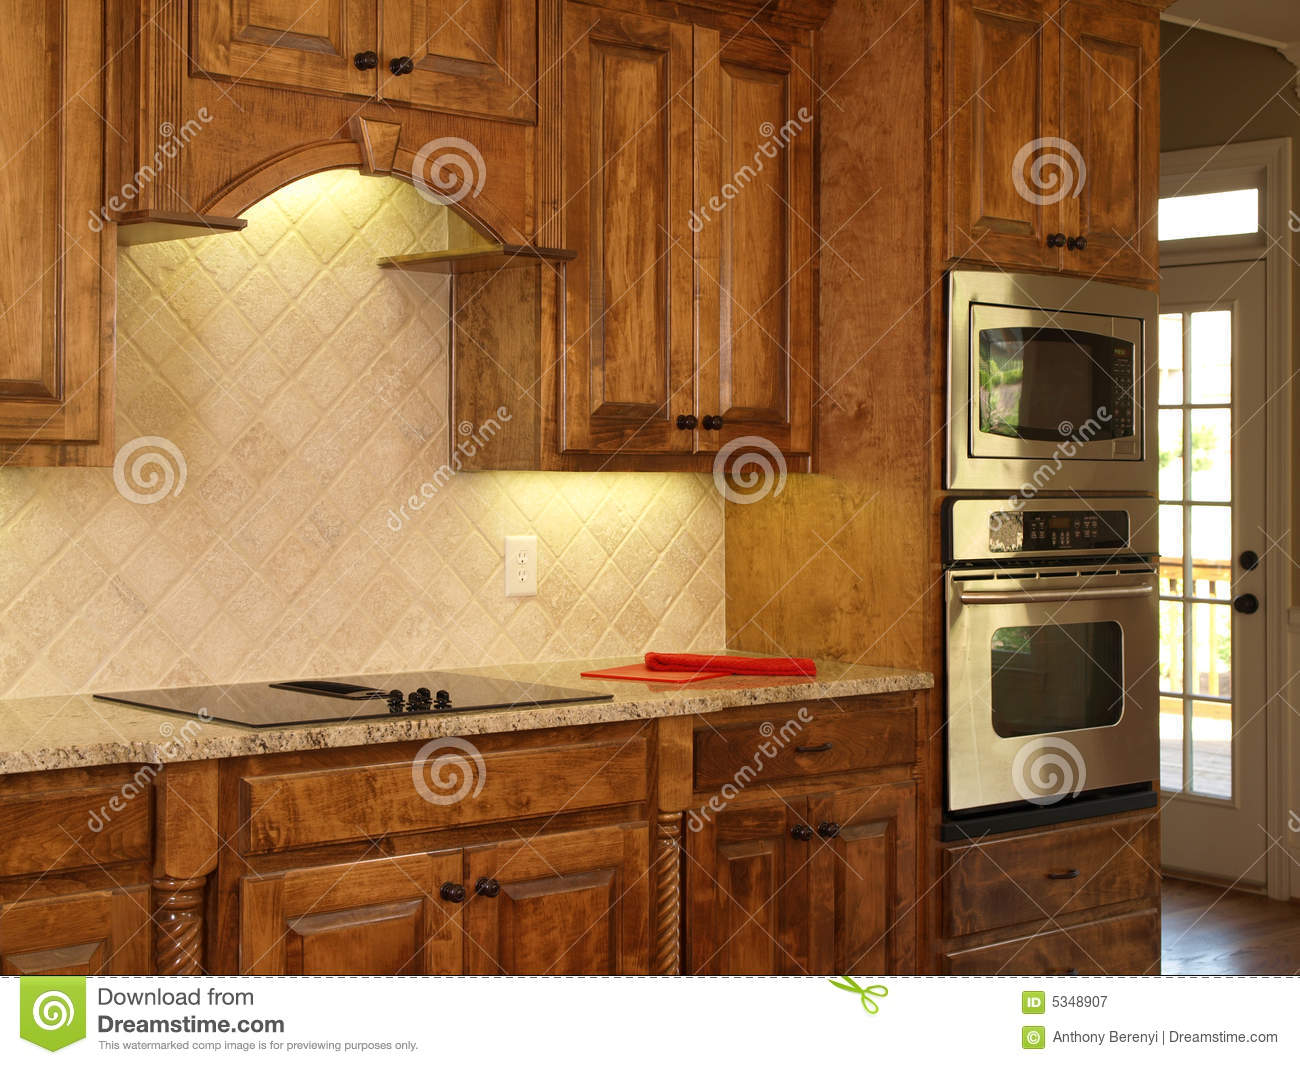 Luxury model home maple kitchen cabinets royalty free for Kitchen cabinets models